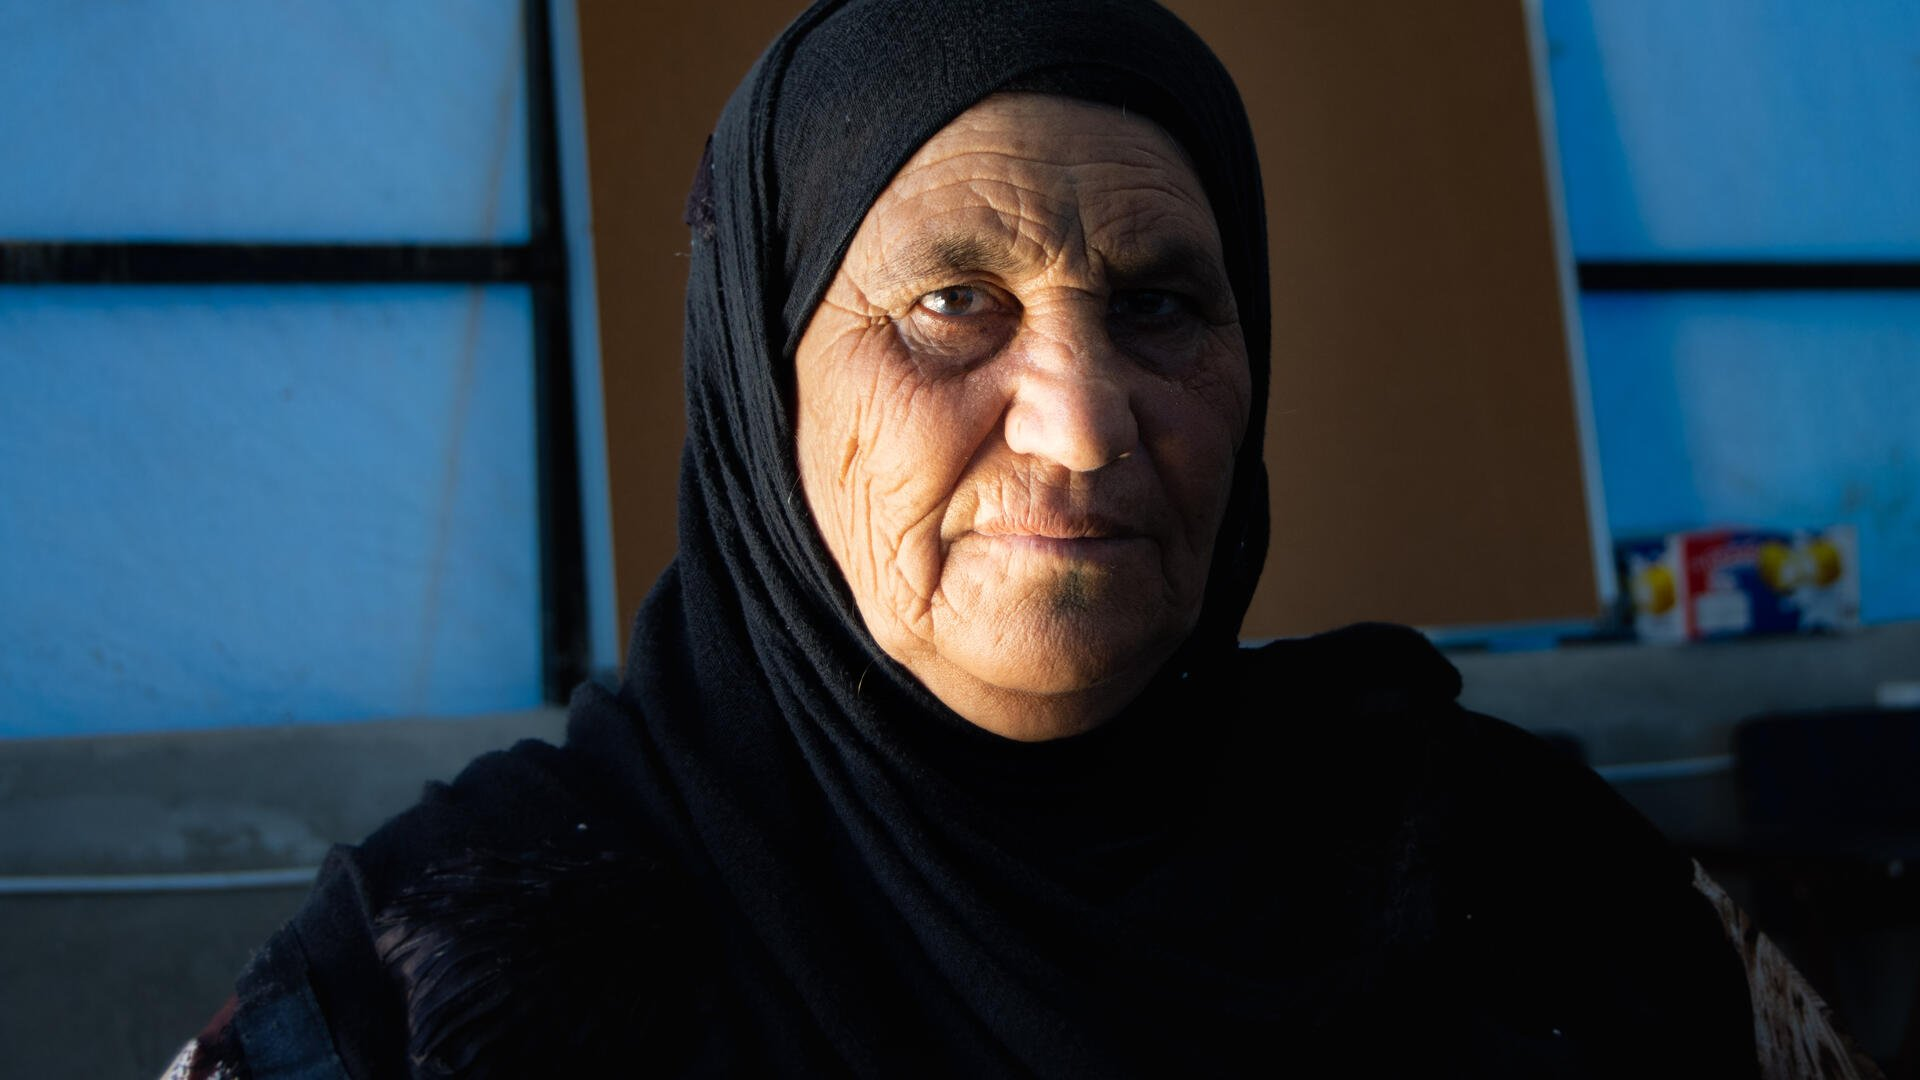 Hila fled Deir ez-Zor after the area was besieged by ISIS and her home was destroyed